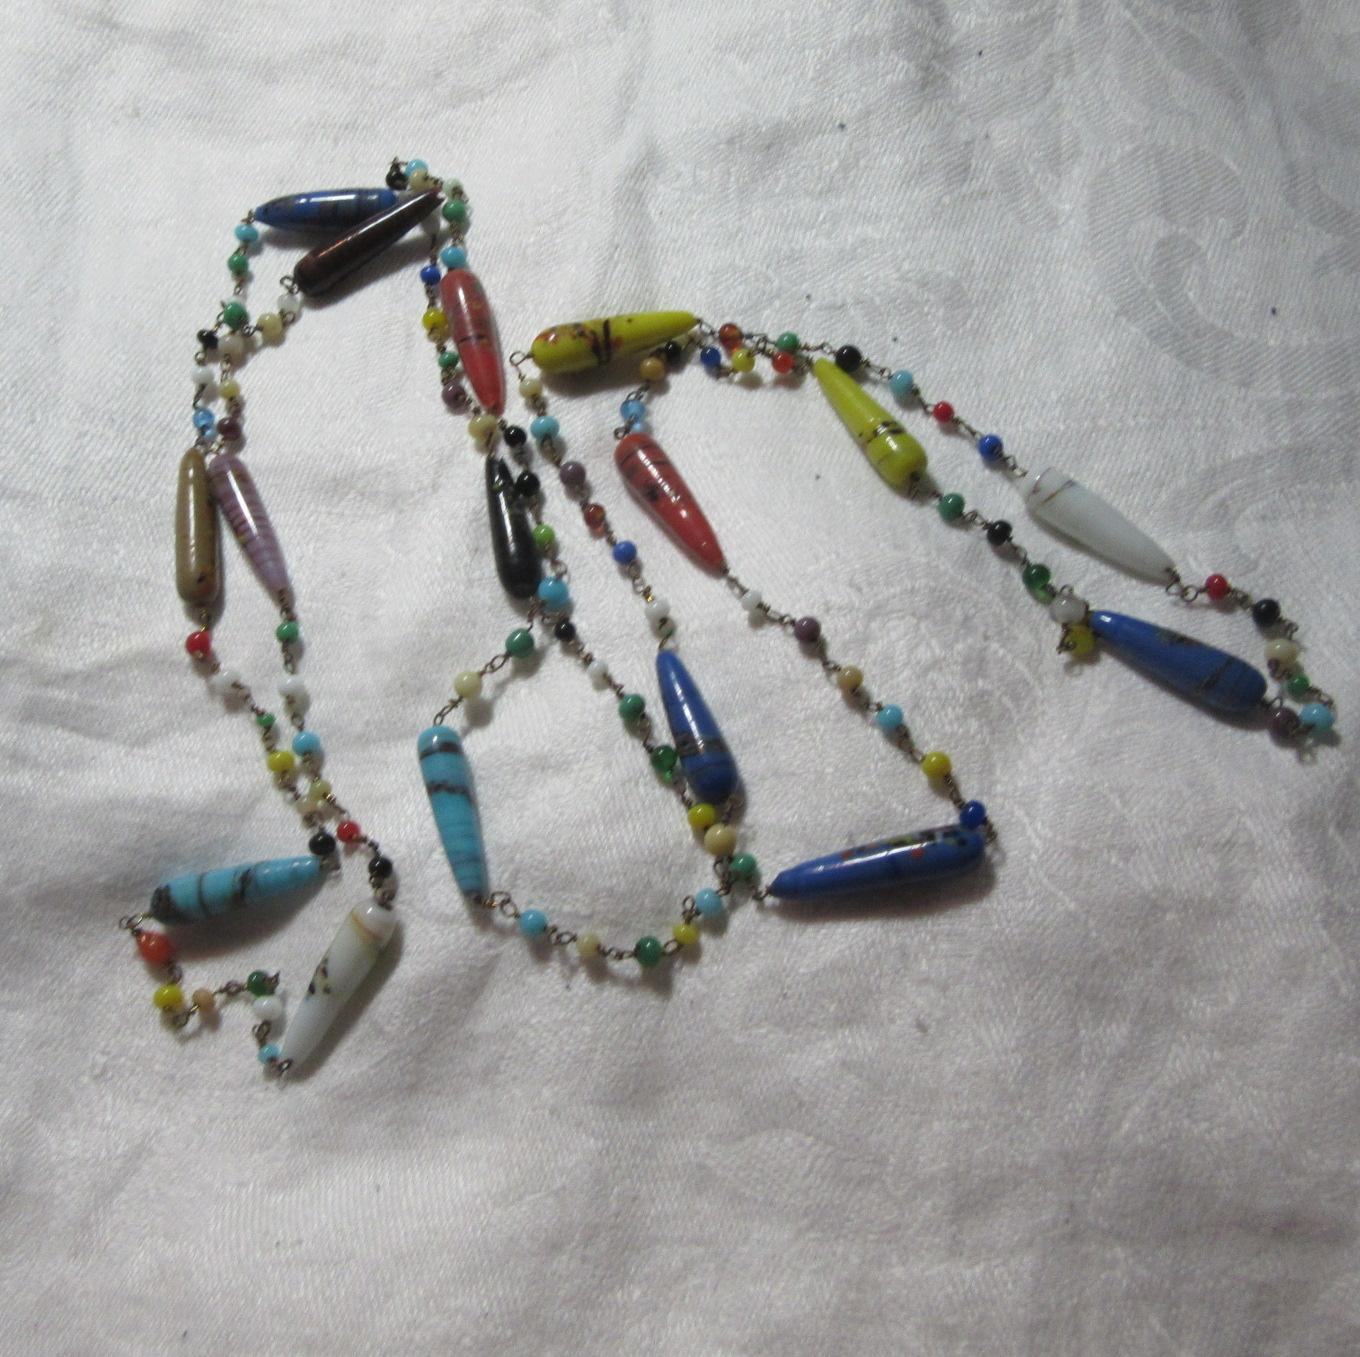 Old Venetian Or Art Glass Beads Necklace